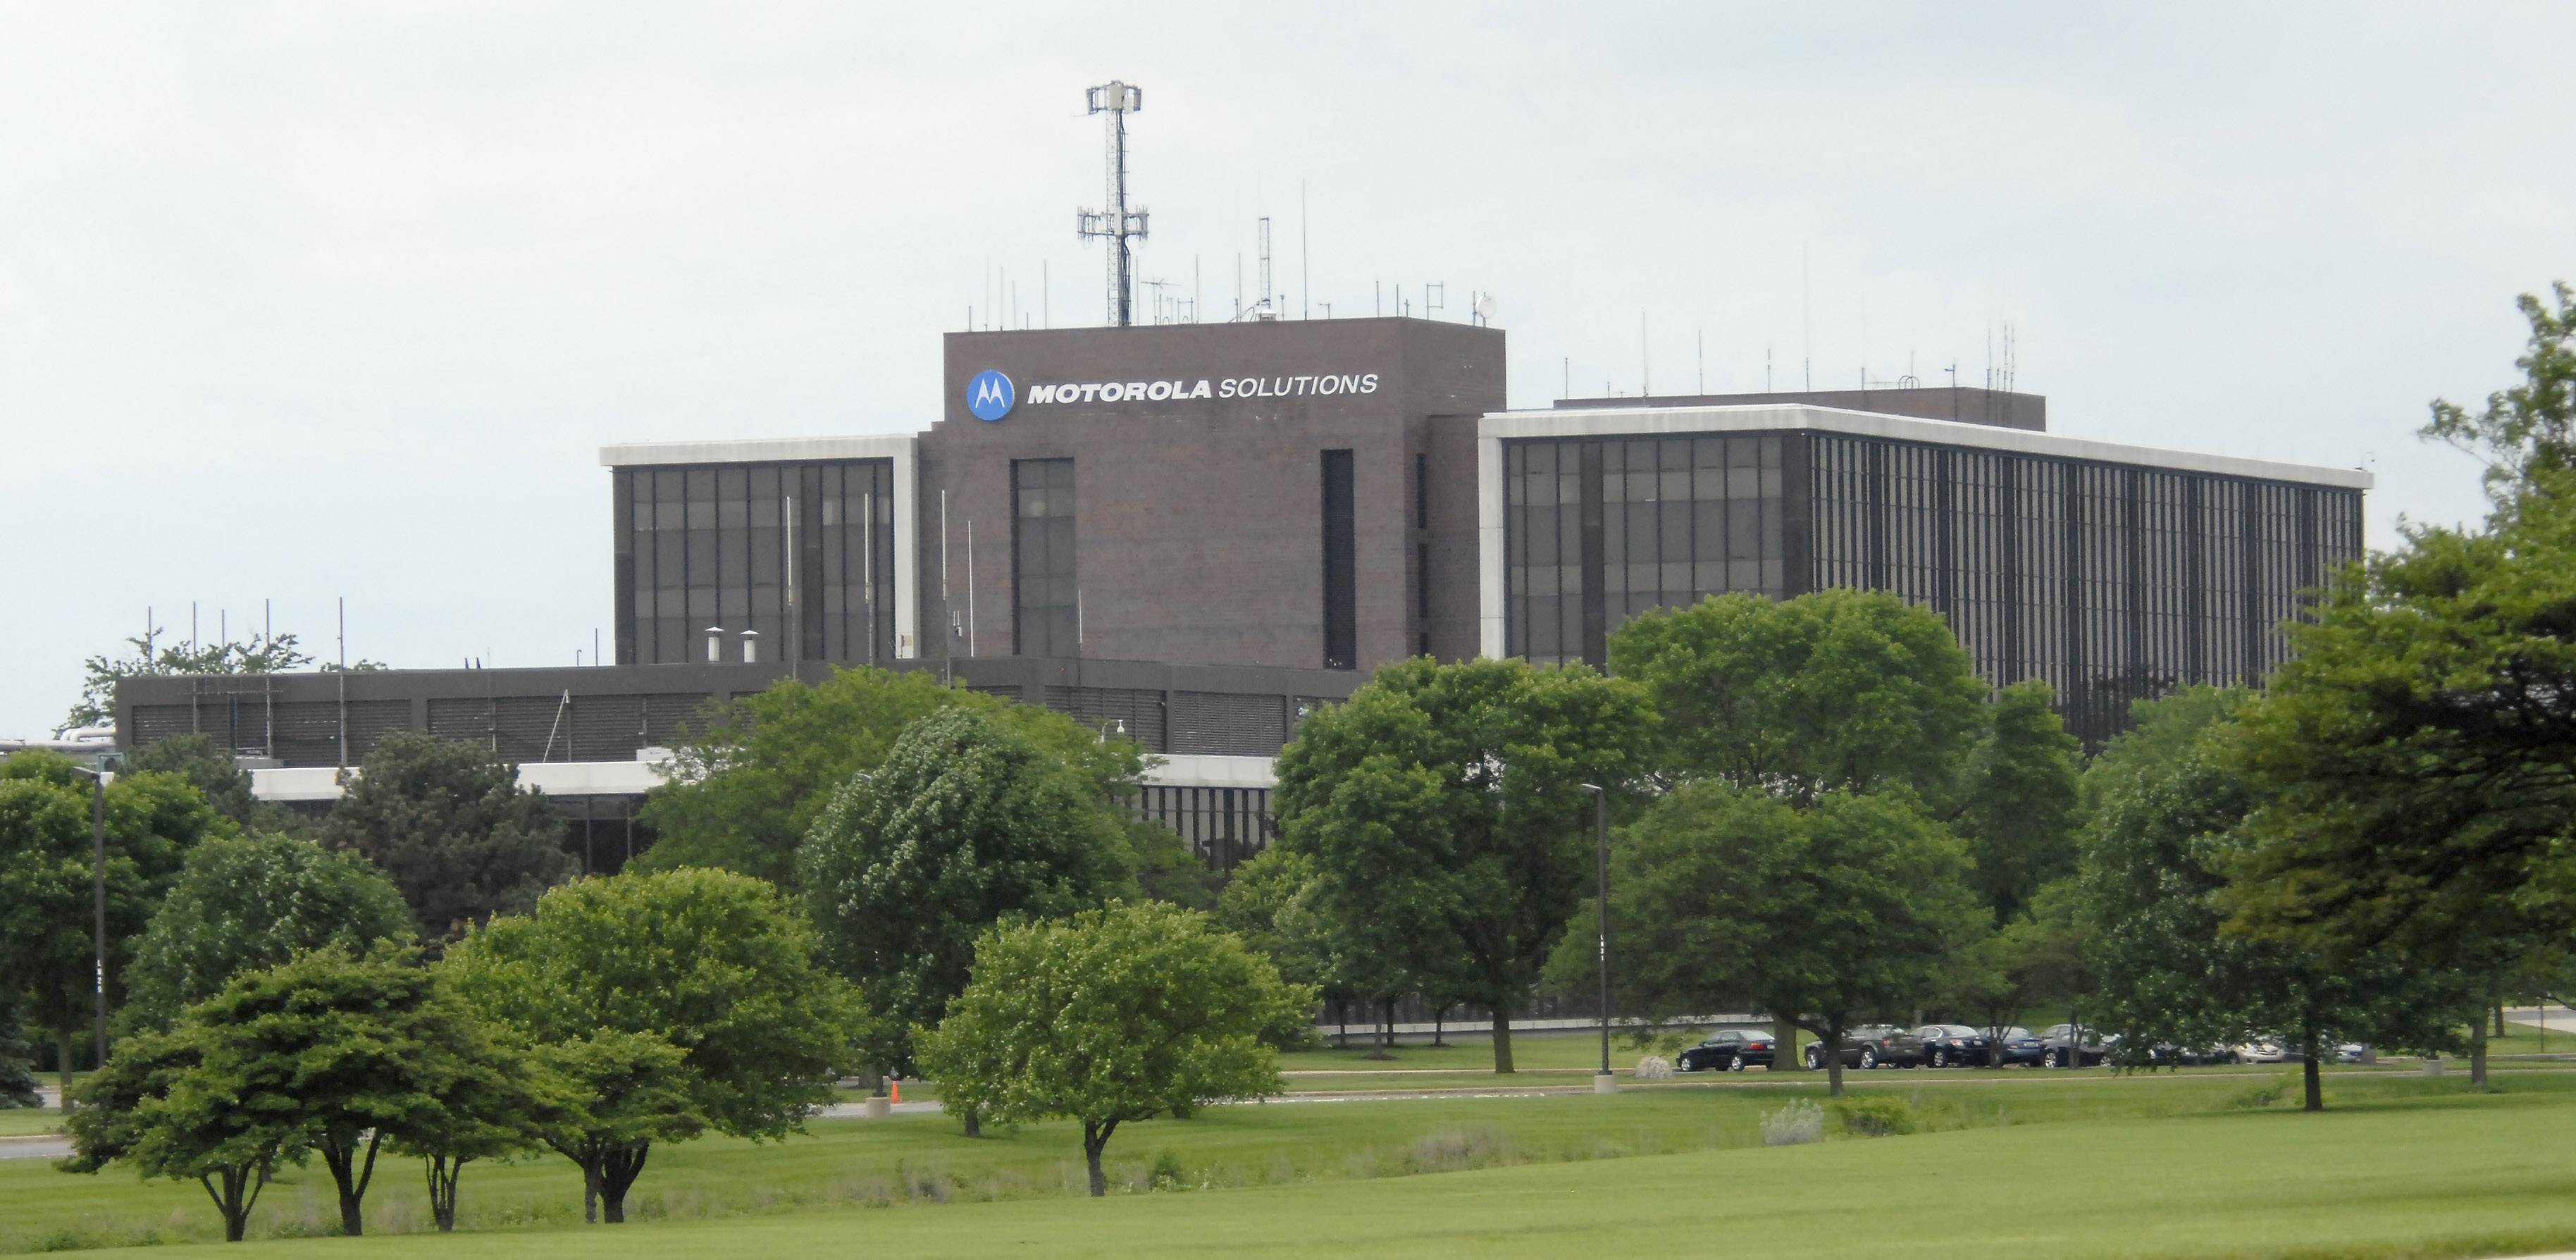 Design of new road on Motorola campus to cost Schaumburg $625,000